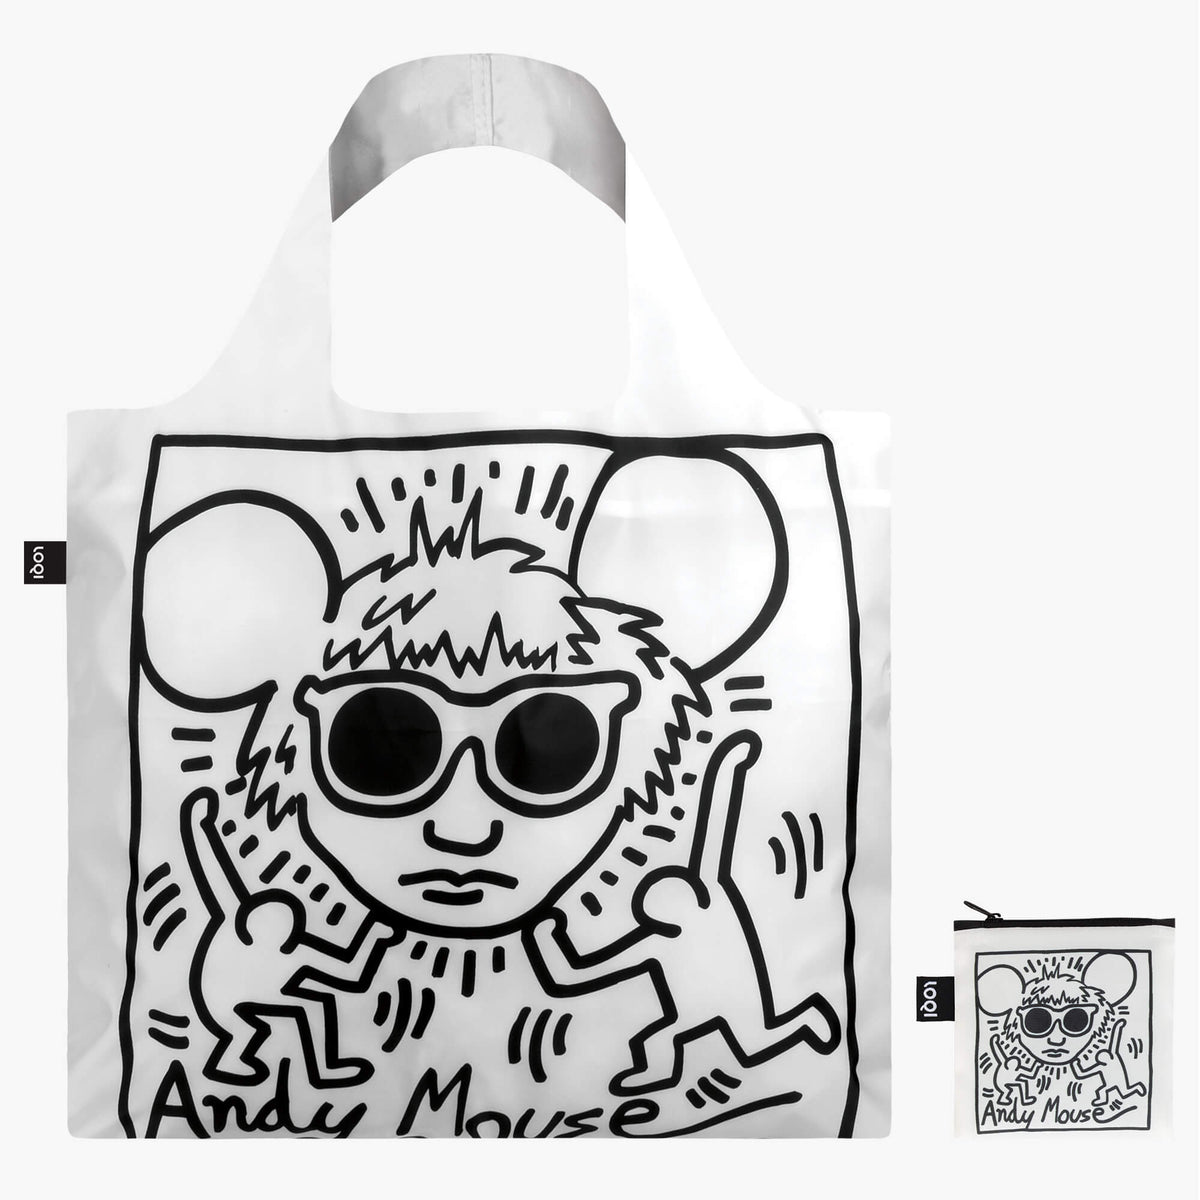 LOQI Keith Haring Andy Mouse Bag with zip pocket